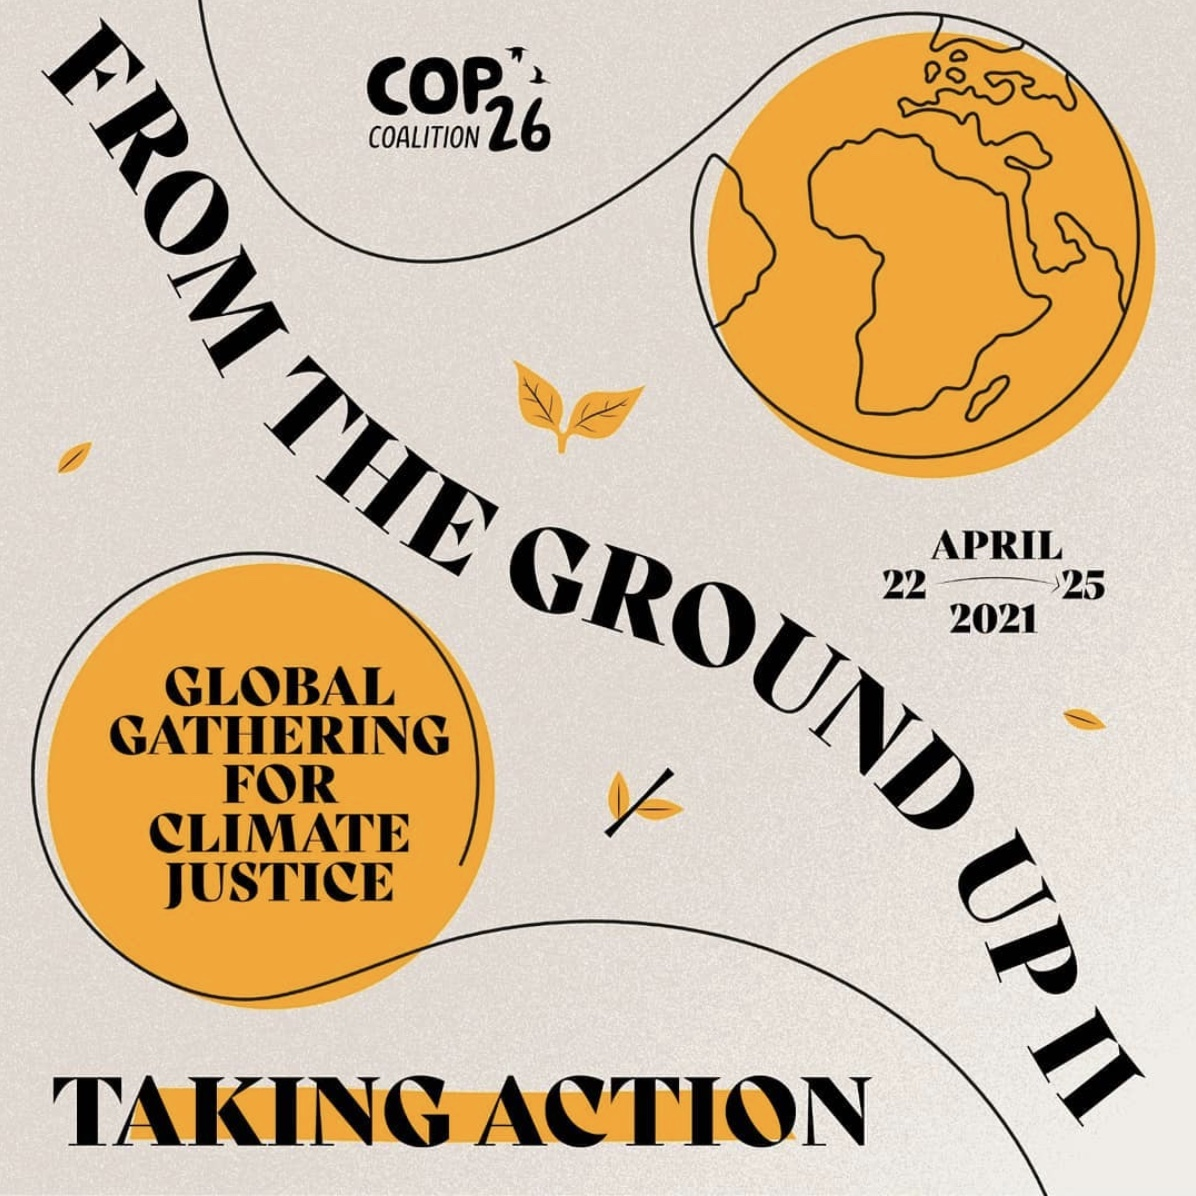 From the Ground Up 2: Taking Action, a Global Gathering for Climate Justice